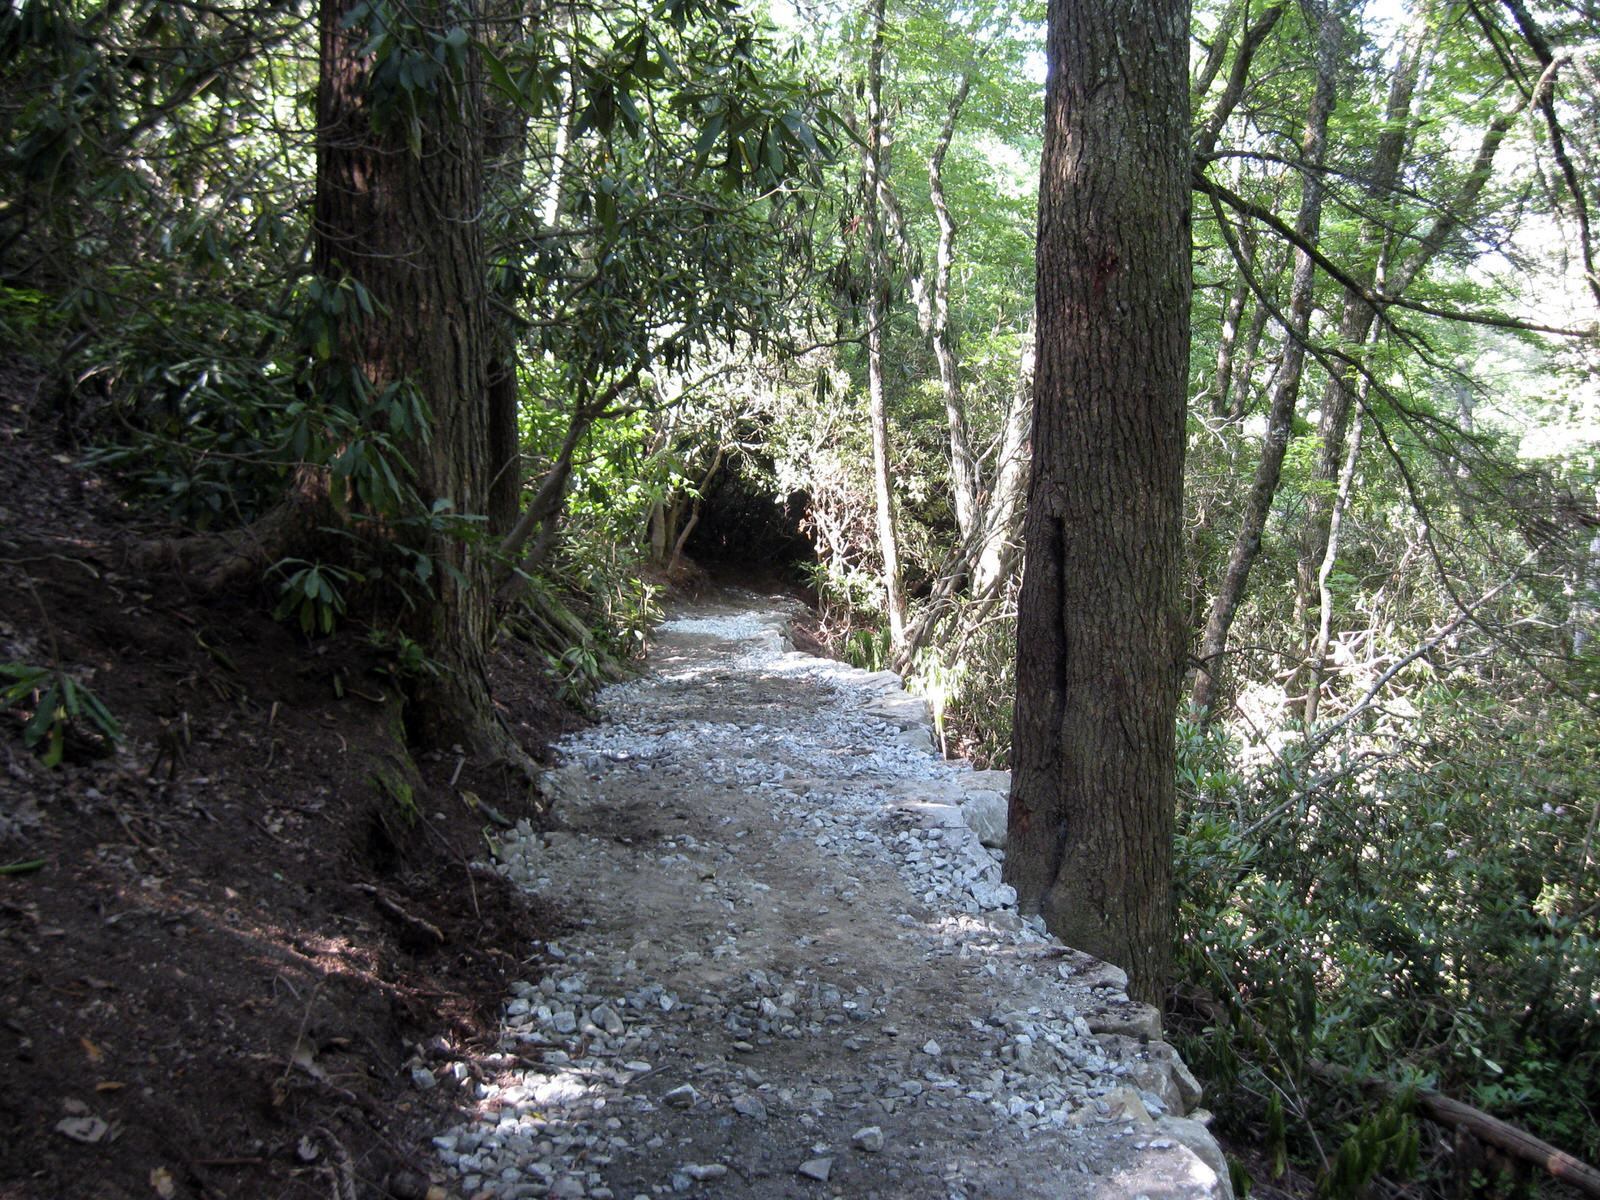 photo: Rhododendren Park Trail. Photo by Hillrie Quin.